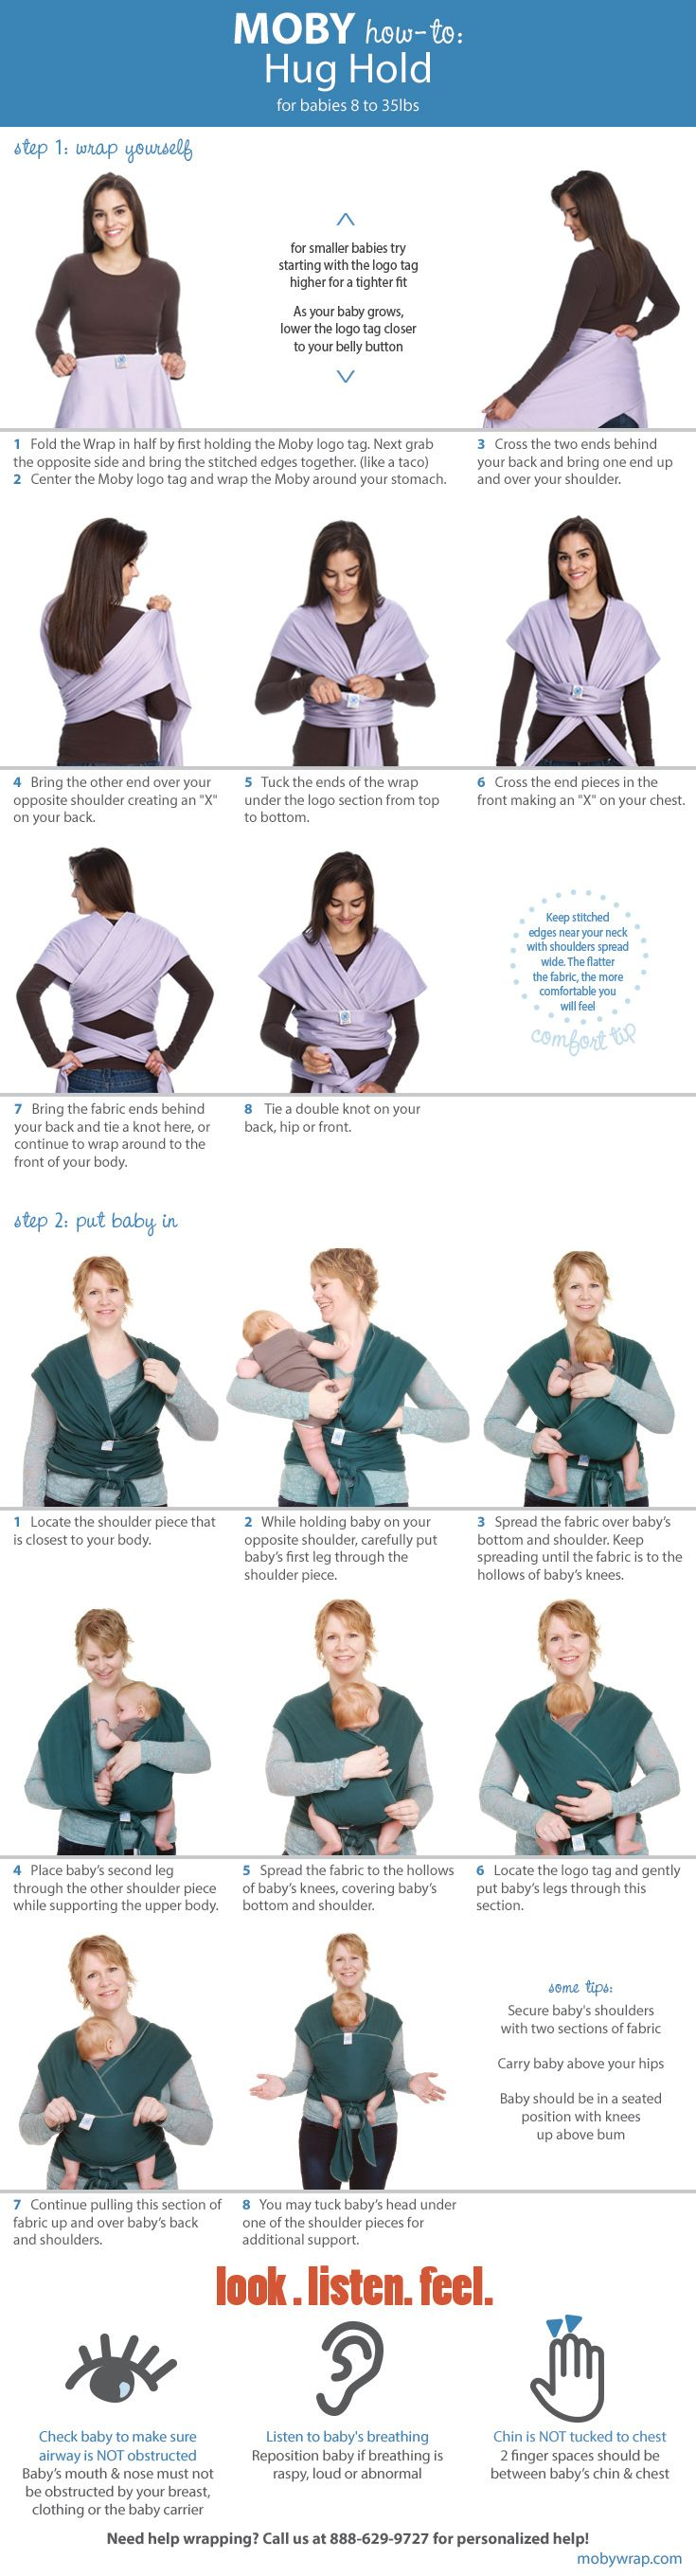 Moby How To The Hug Hold Check Out Our Youtube Channel For Video